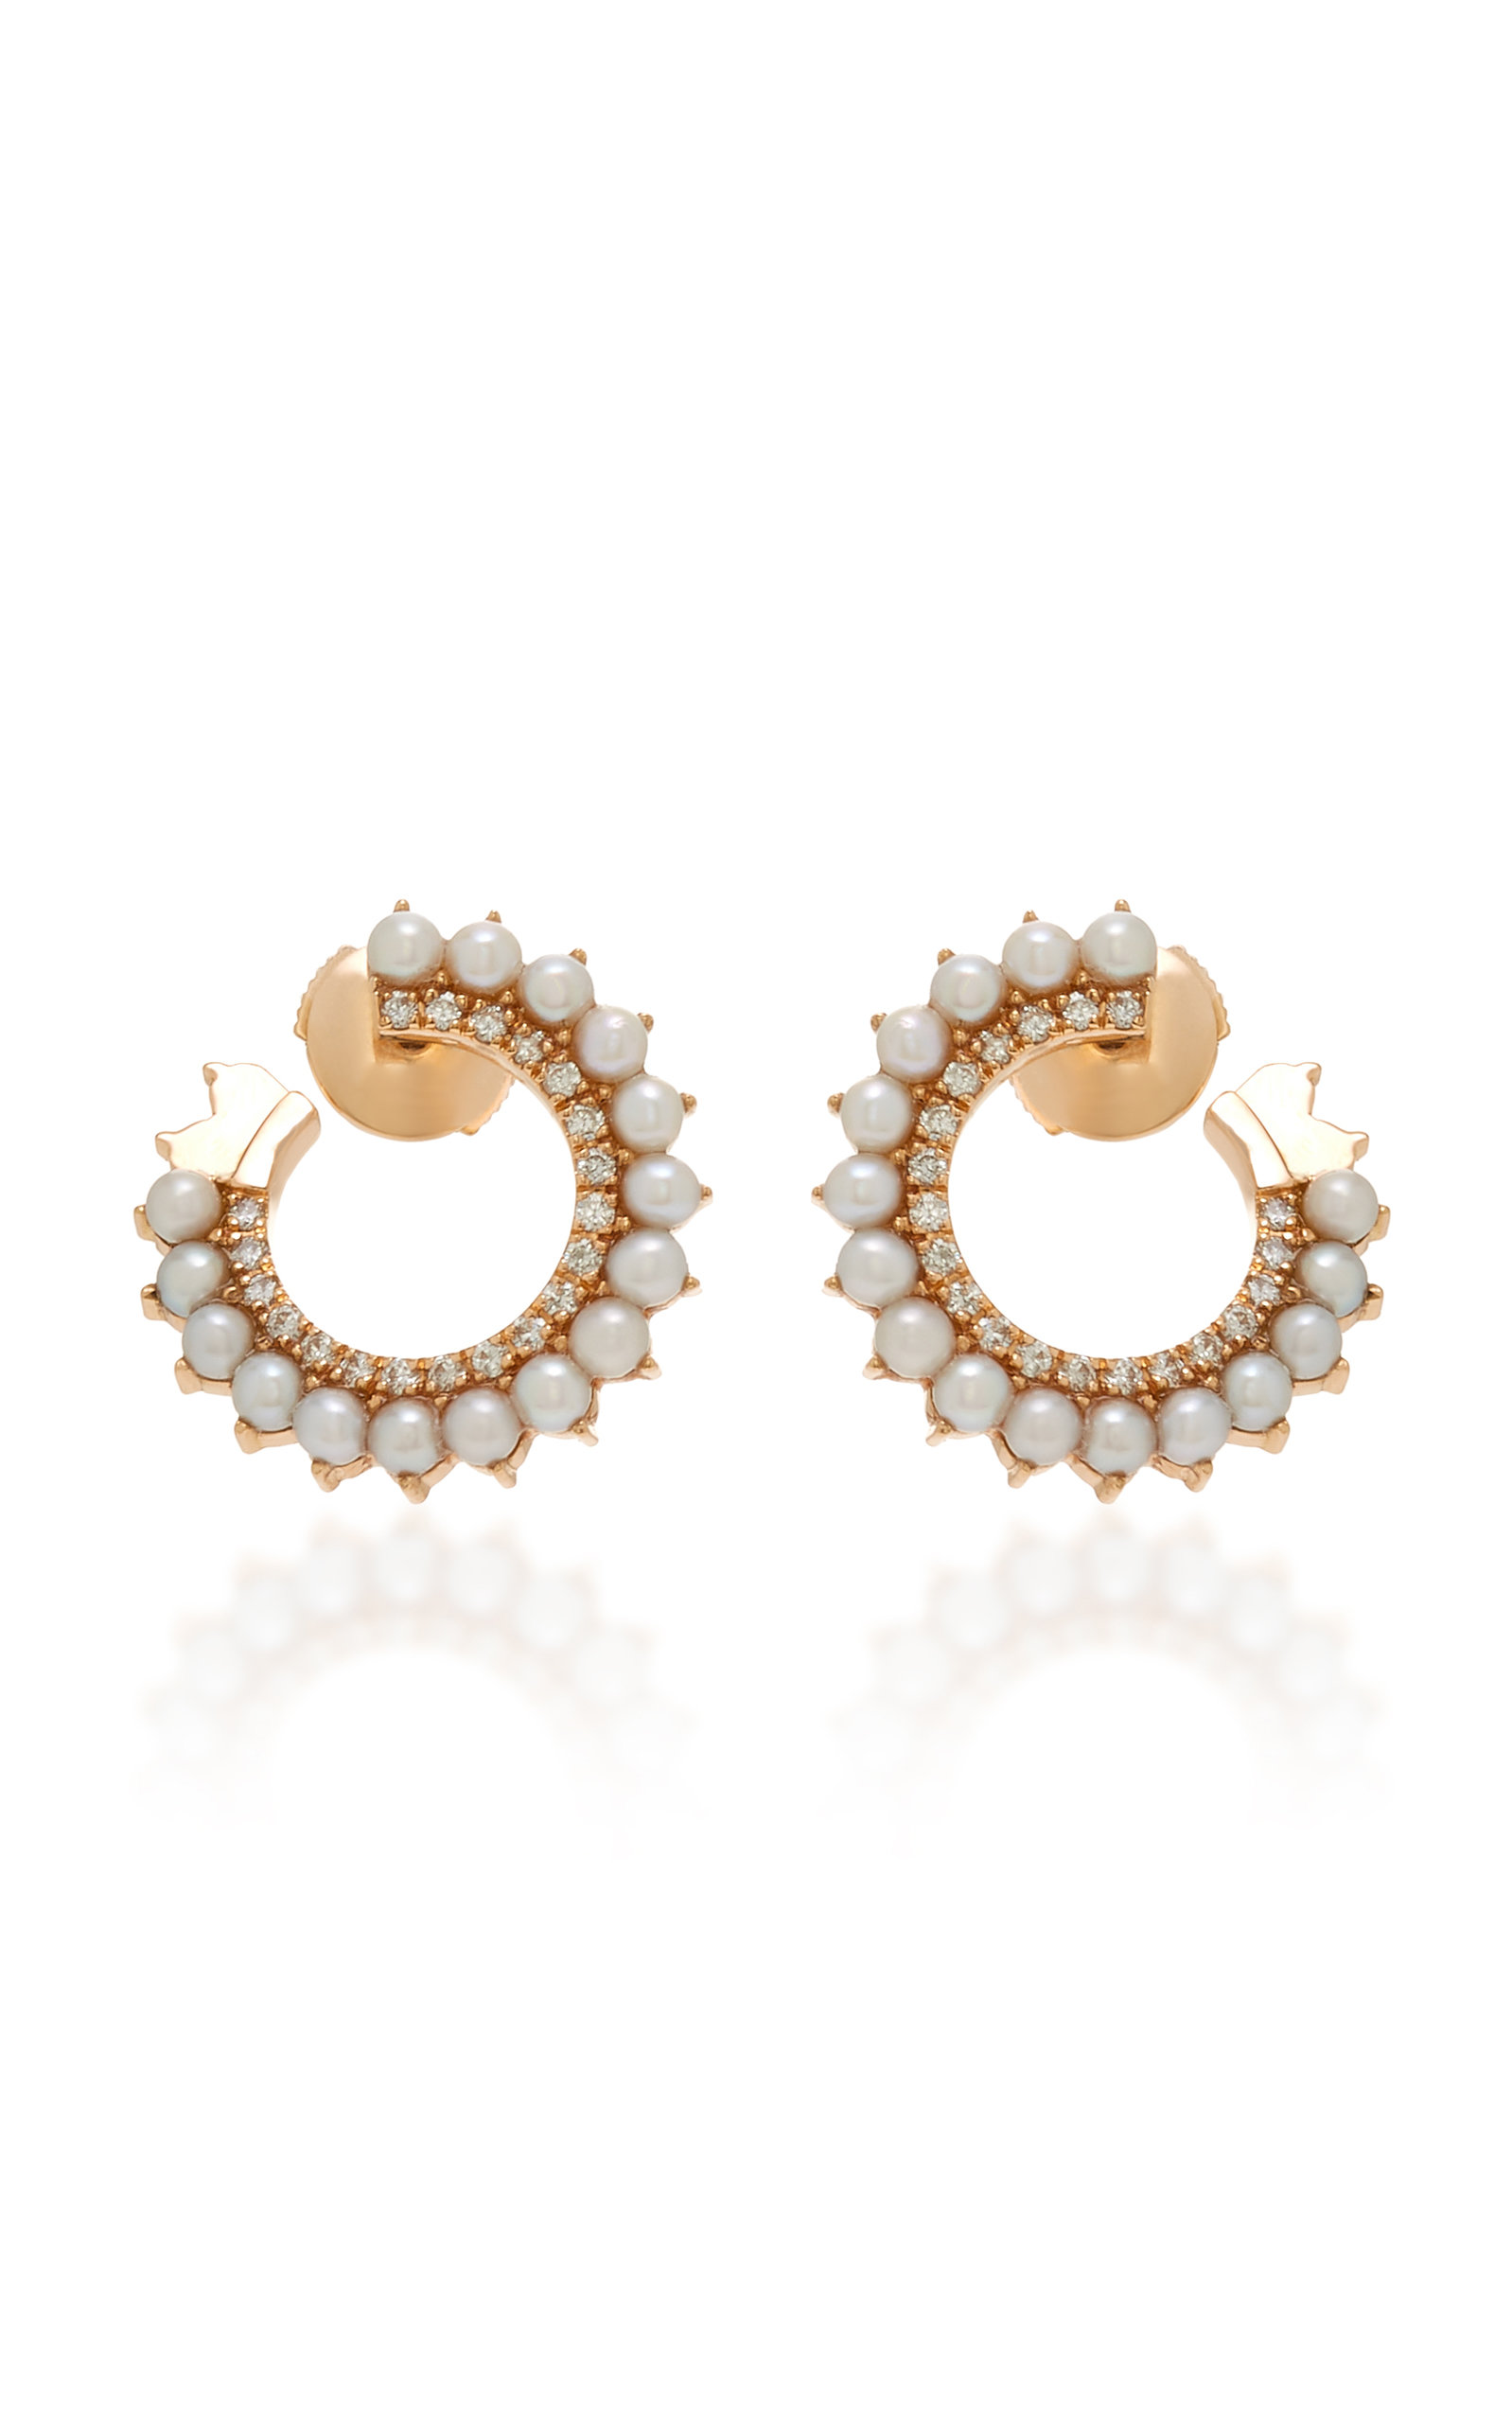 NOUVEL HERITAGE 18K Rose Gold Diamond And Pearl Earrings